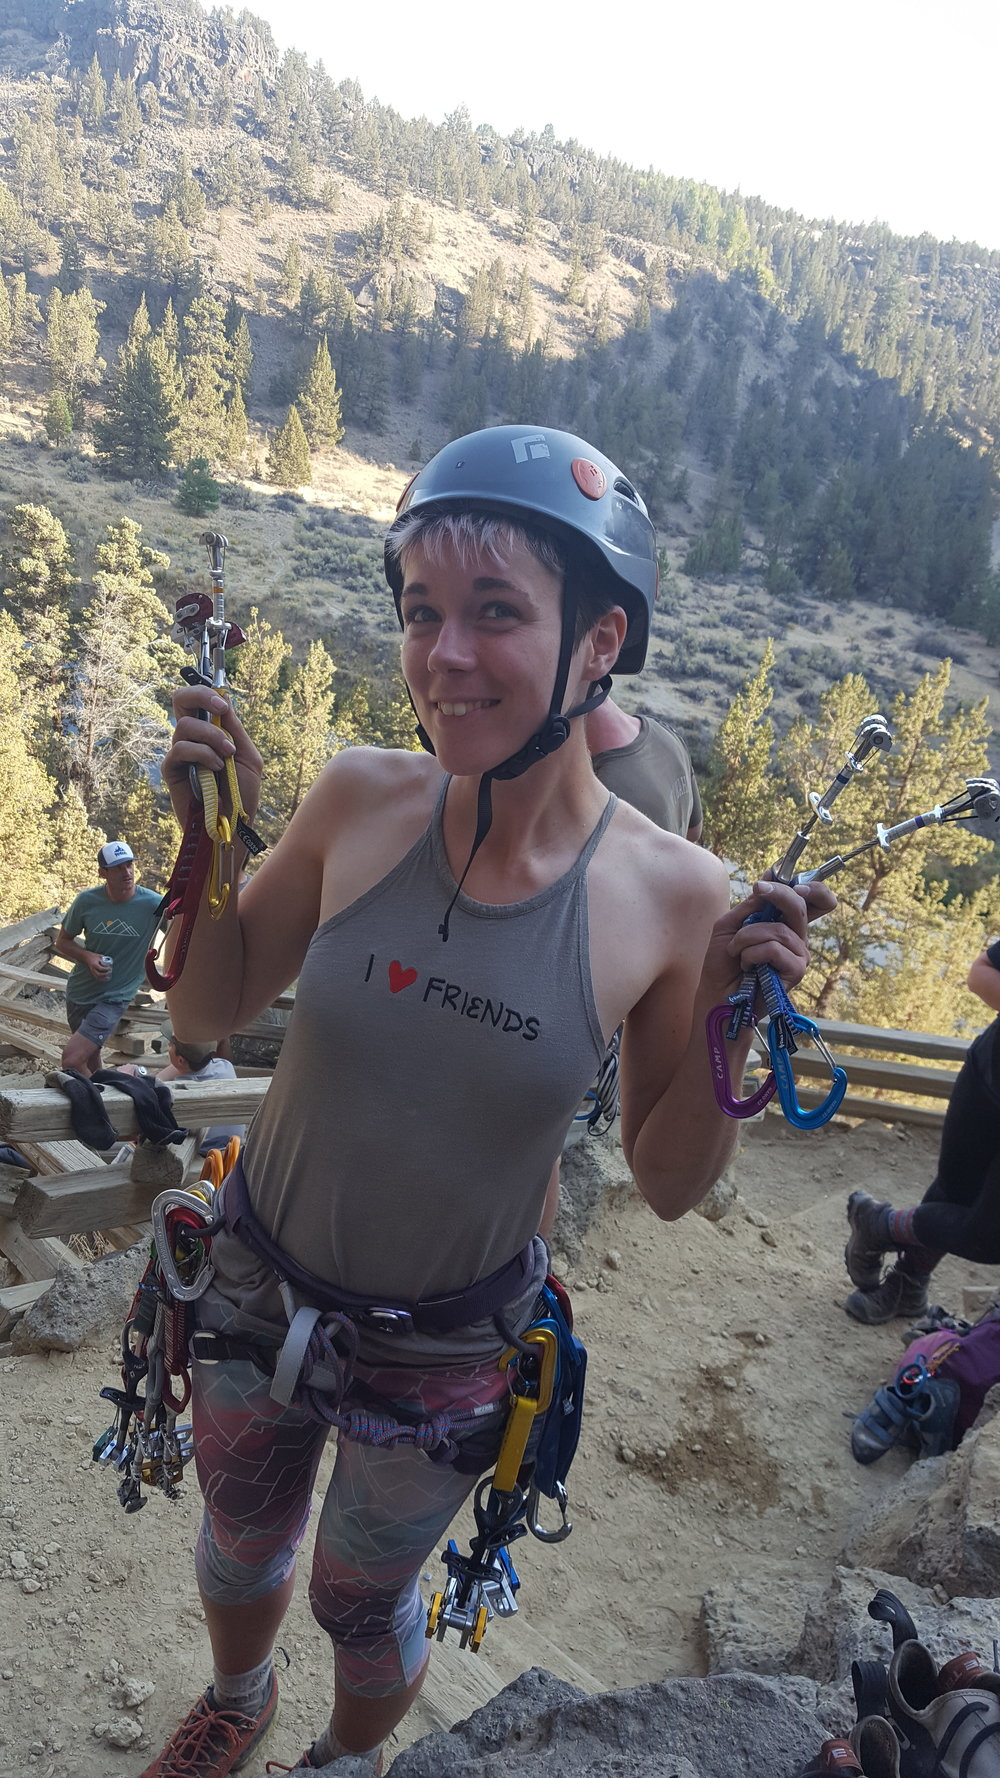 Nastassia is an avid long distance hiker who loves to hike and run as far as she can. Here she is sharing her love and passion for traditional climbing!